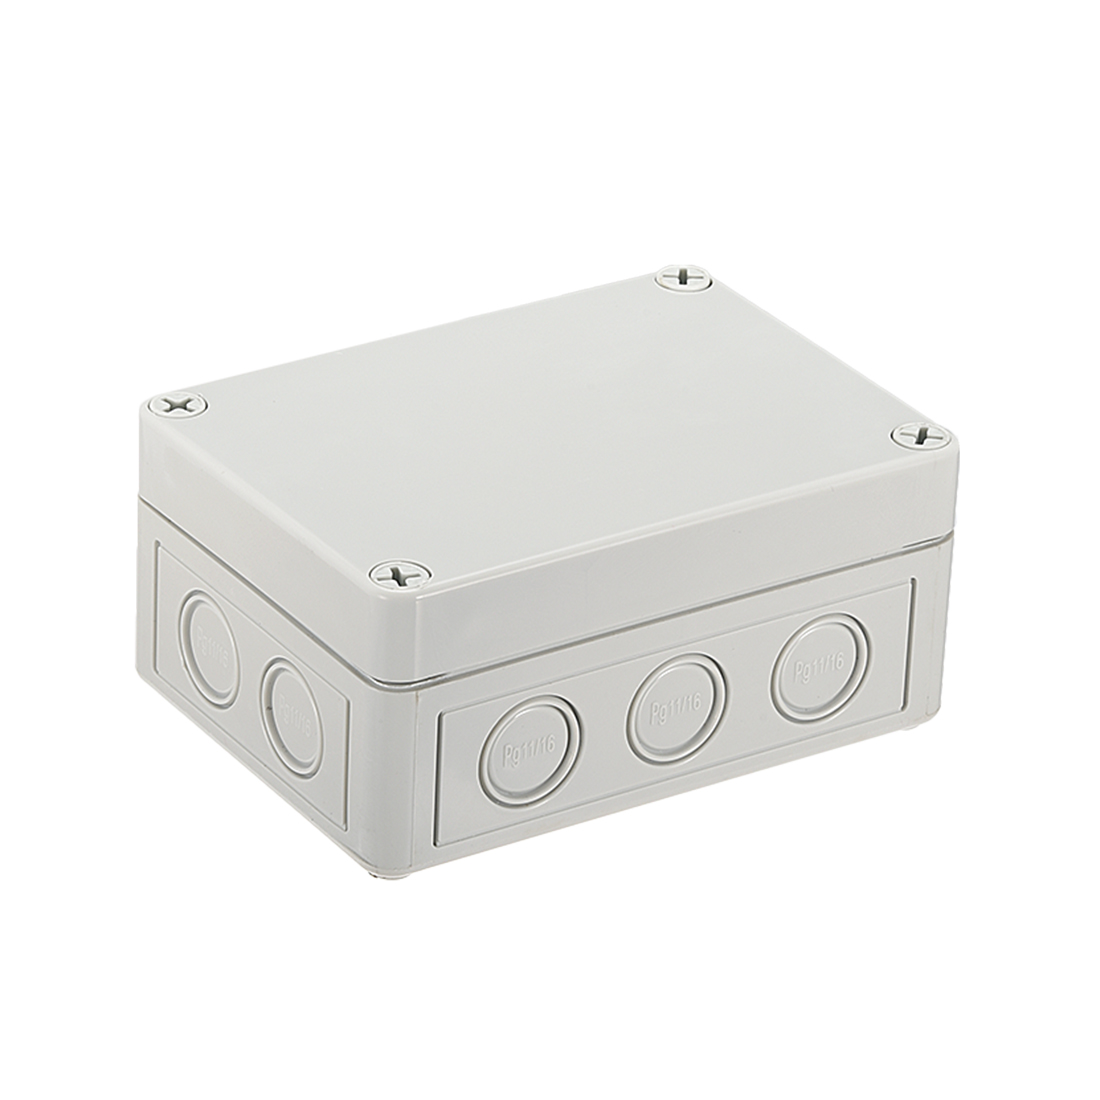 """5.1""""x3.7""""x2.24""""(130mmx93mmx57mm) ABS Junction Box Universal Electric Project Enclosure"""